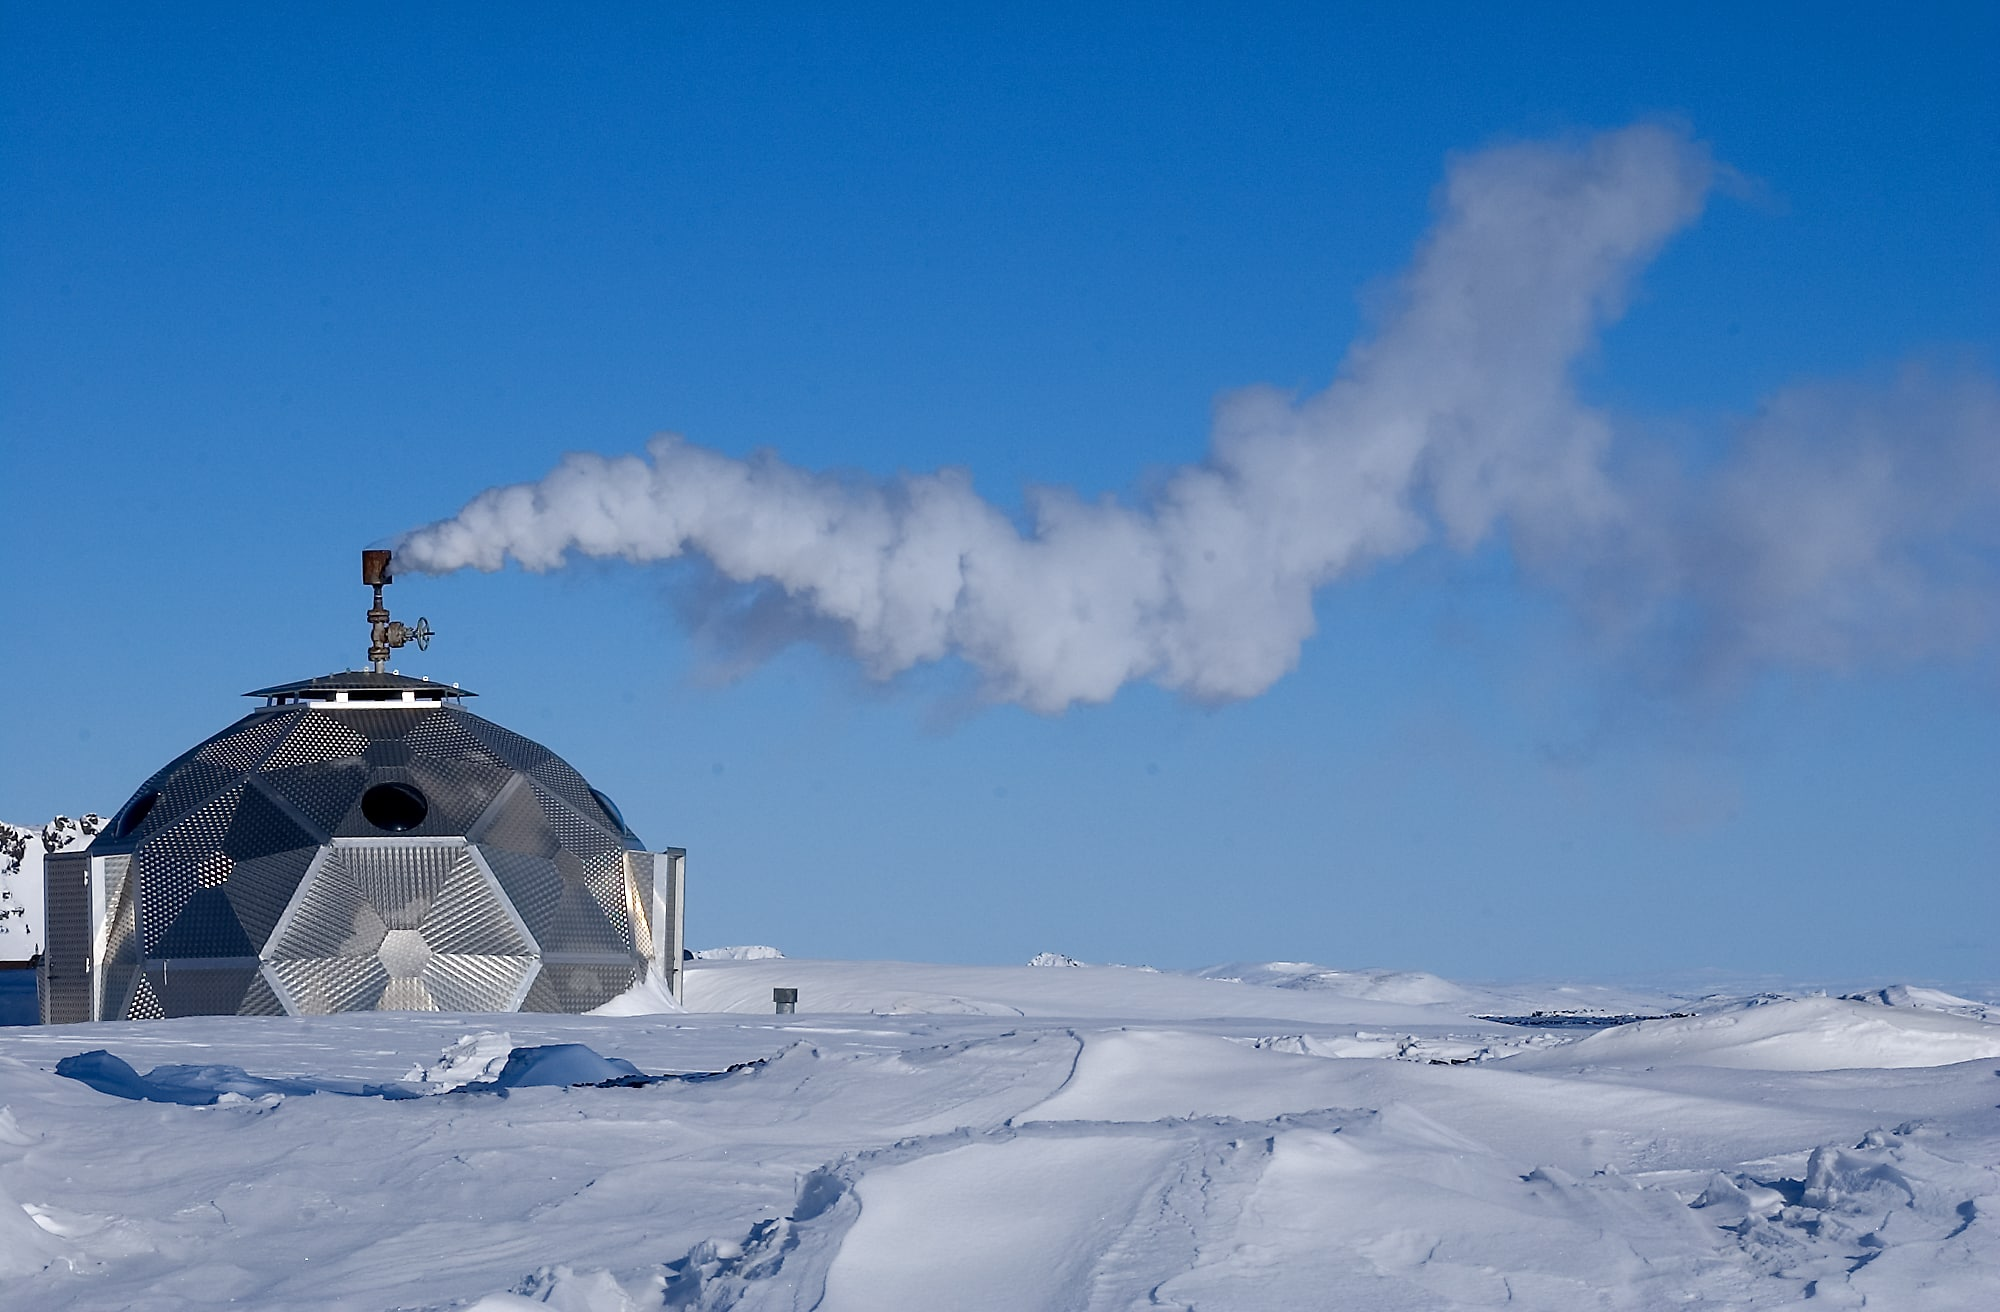 Geothermal Offers Cheaper Cleaner Alternative To Site C Dam New Power Plant Block Diagram Report The Narwhal